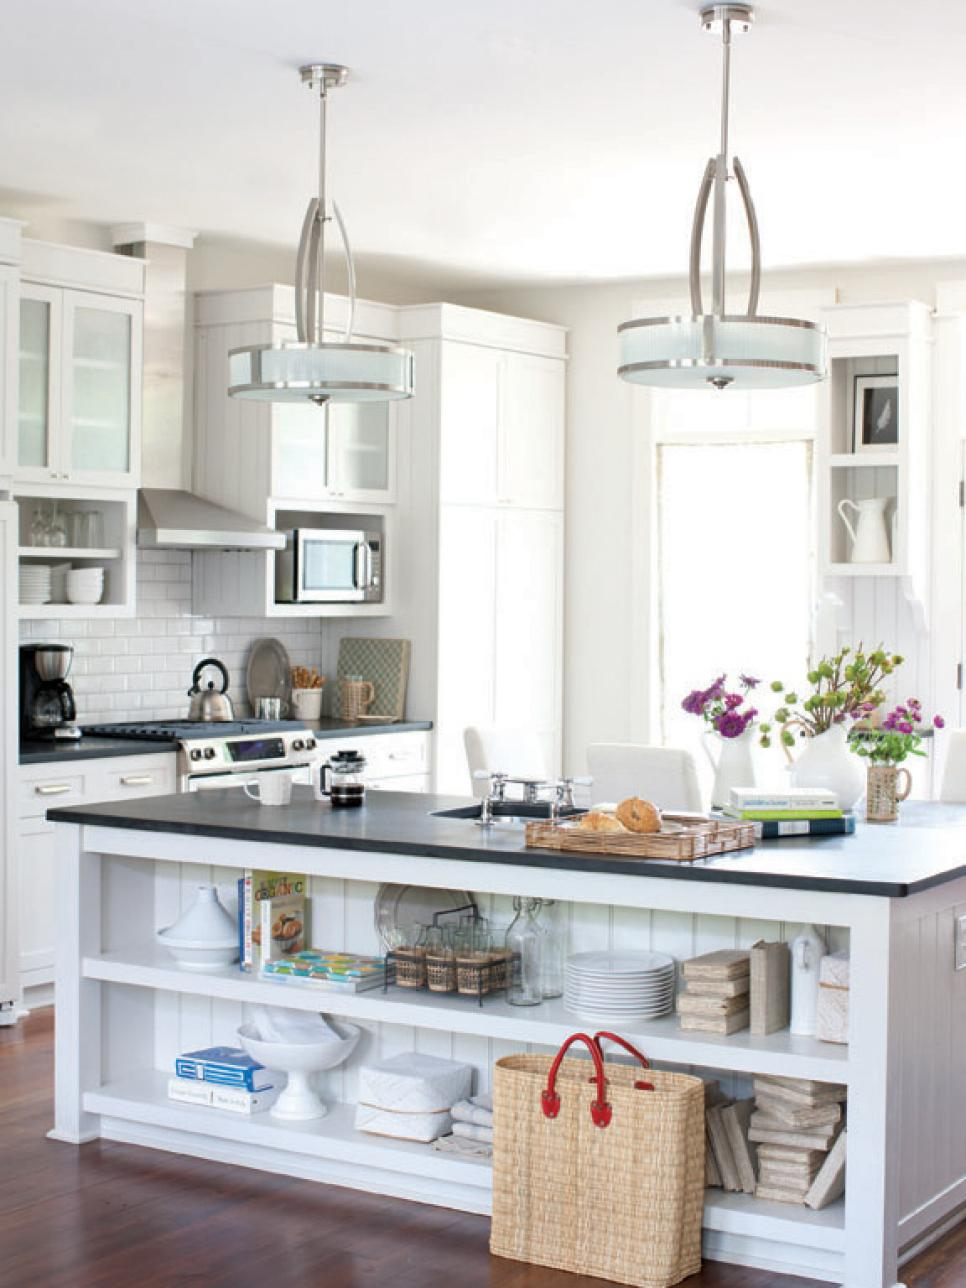 marvelous Lights For Over A Kitchen Island #2: HGTV.com